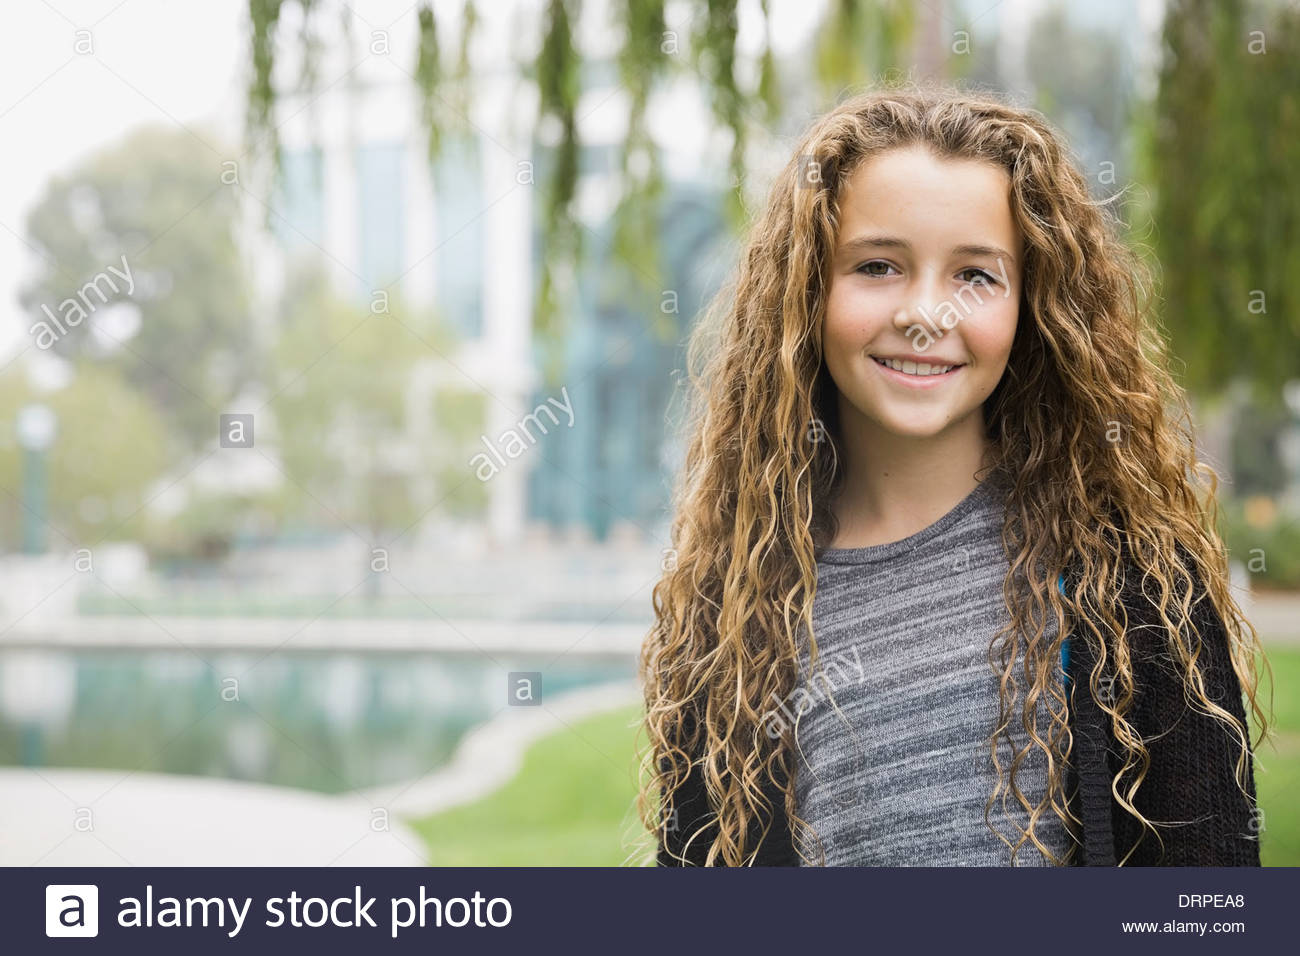 Portrait of smiling girl in park Photo Stock